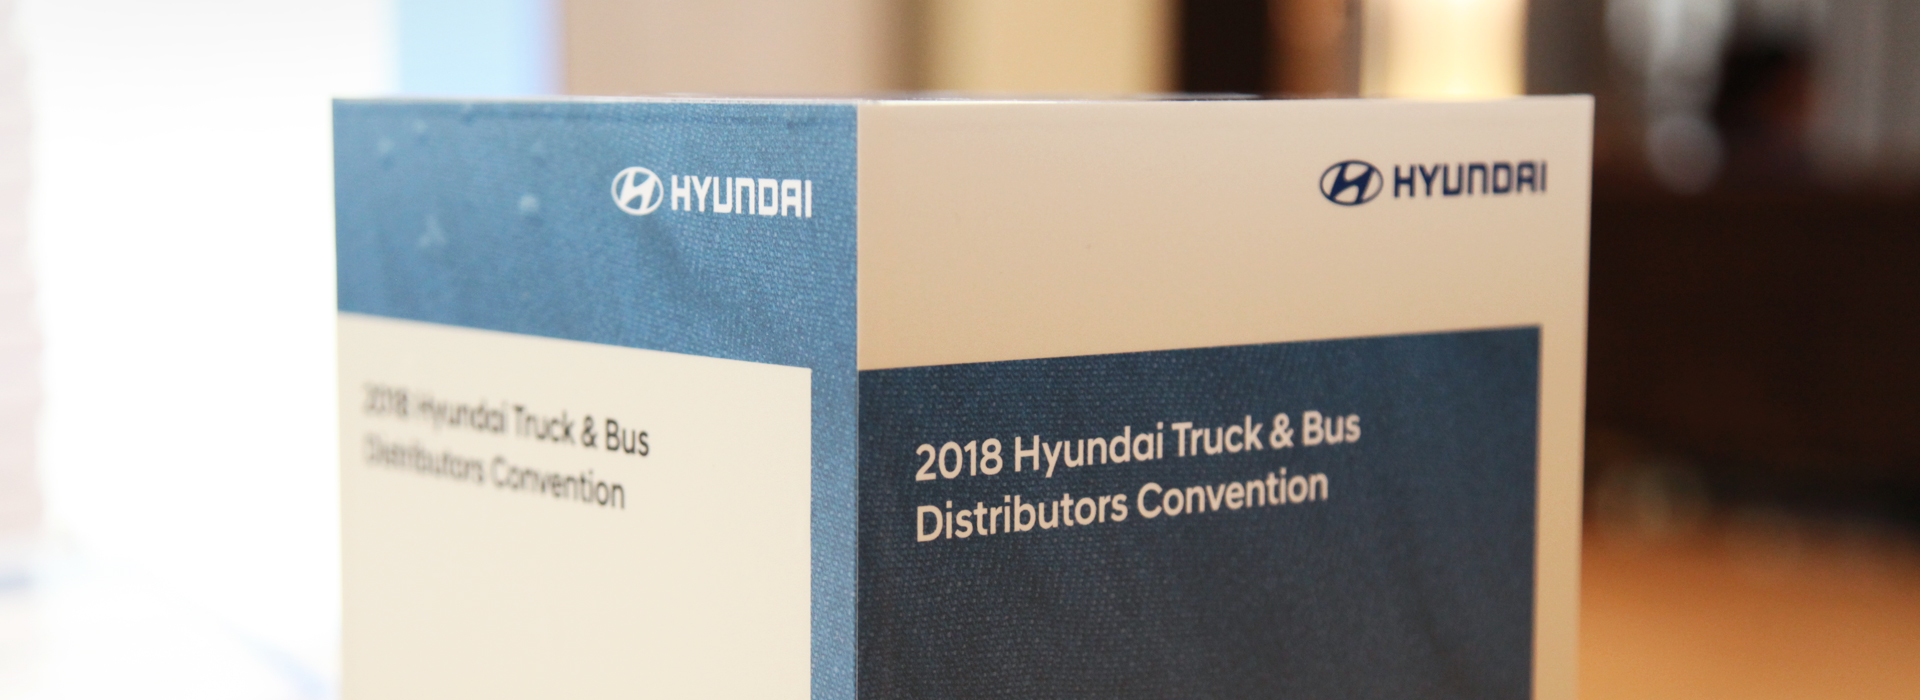 Hyundai Truck and Bus Distributors Convention 2018 Slider Image4